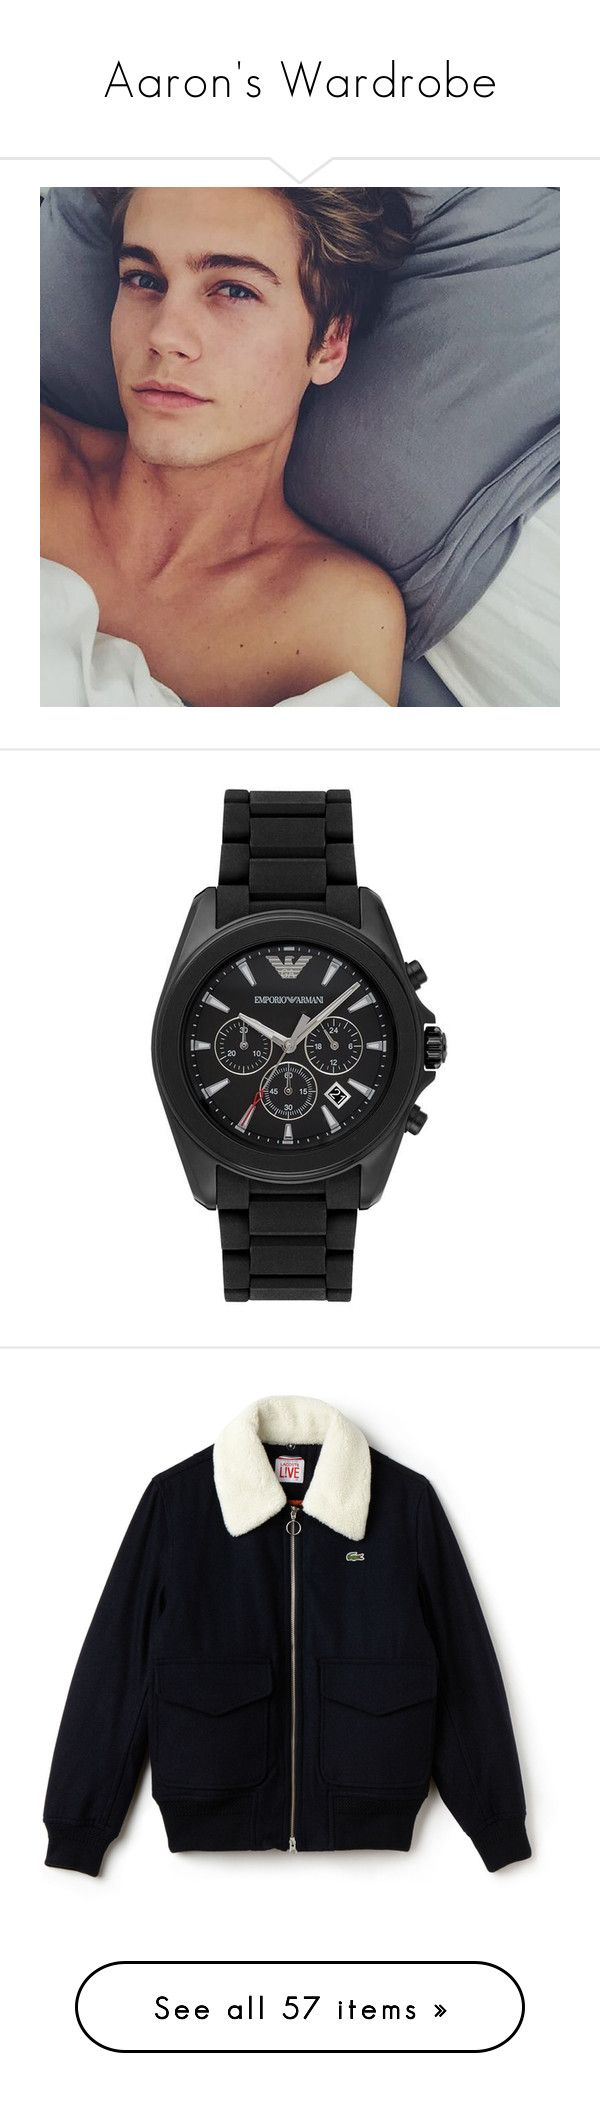 """""""Aaron's Wardrobe"""" by xofrnkiero ❤ liked on Polyvore featuring neels visser, men's fashion, men's jewelry, men's watches, mens chronograph watches, men's blue dial watches, emporio armani mens watches, mens rubber watches, men's clothing and men's outerwear"""